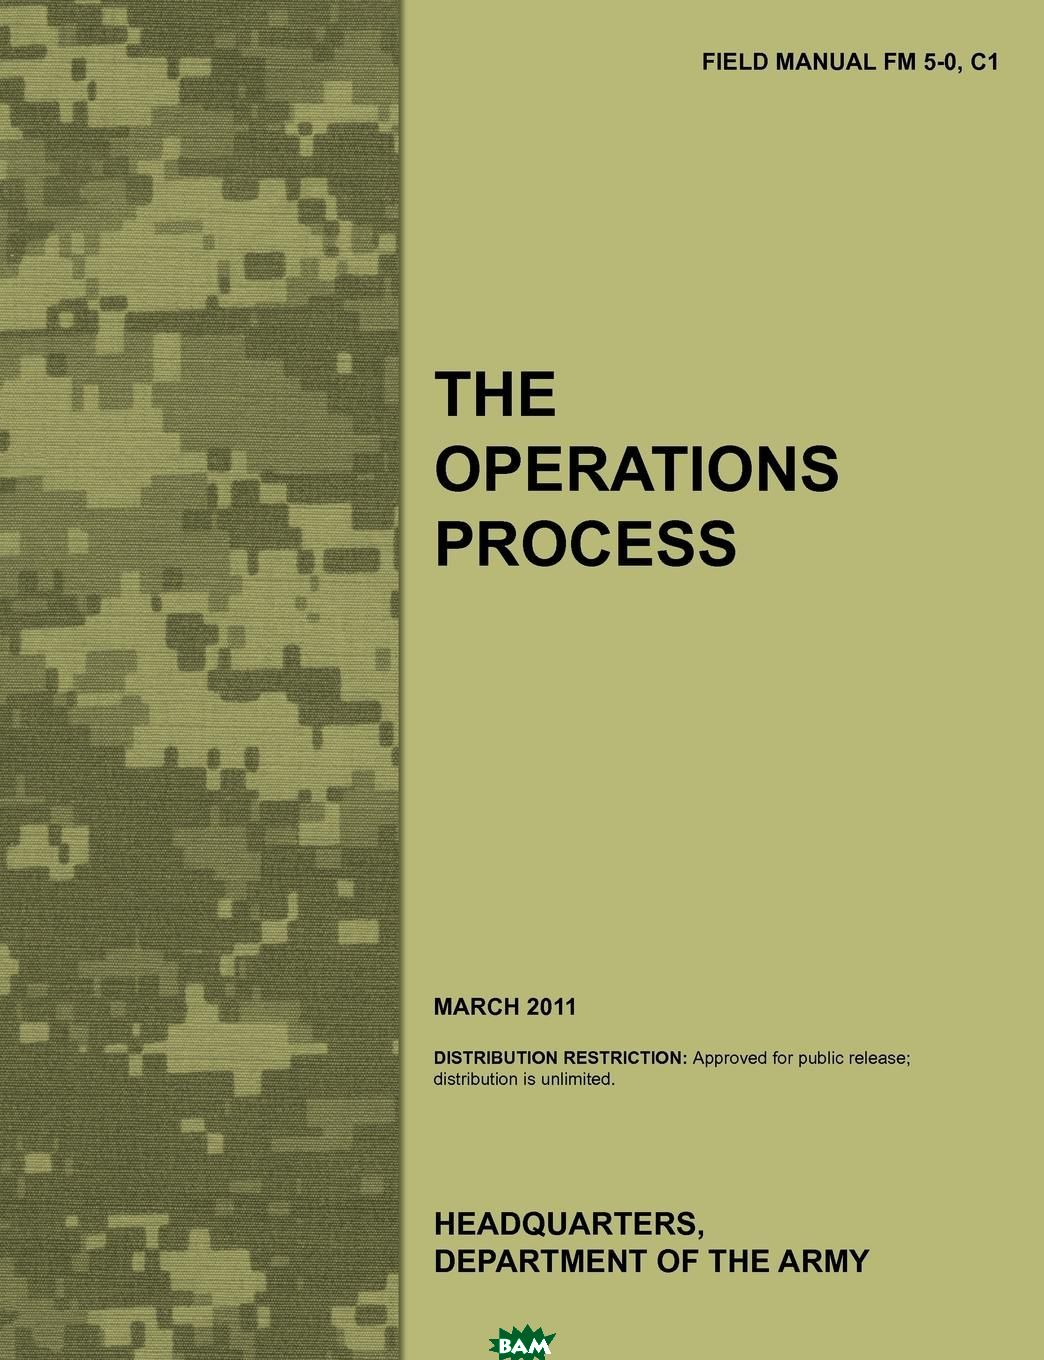 Купить The Operations Process. The official U.S. Army Field Manual FM 5-0, C1 (March 2011), Army Training Doctrine and Command, Combined Arms Doctrine Directorate, U.S. Department of the Army, 9781780399454